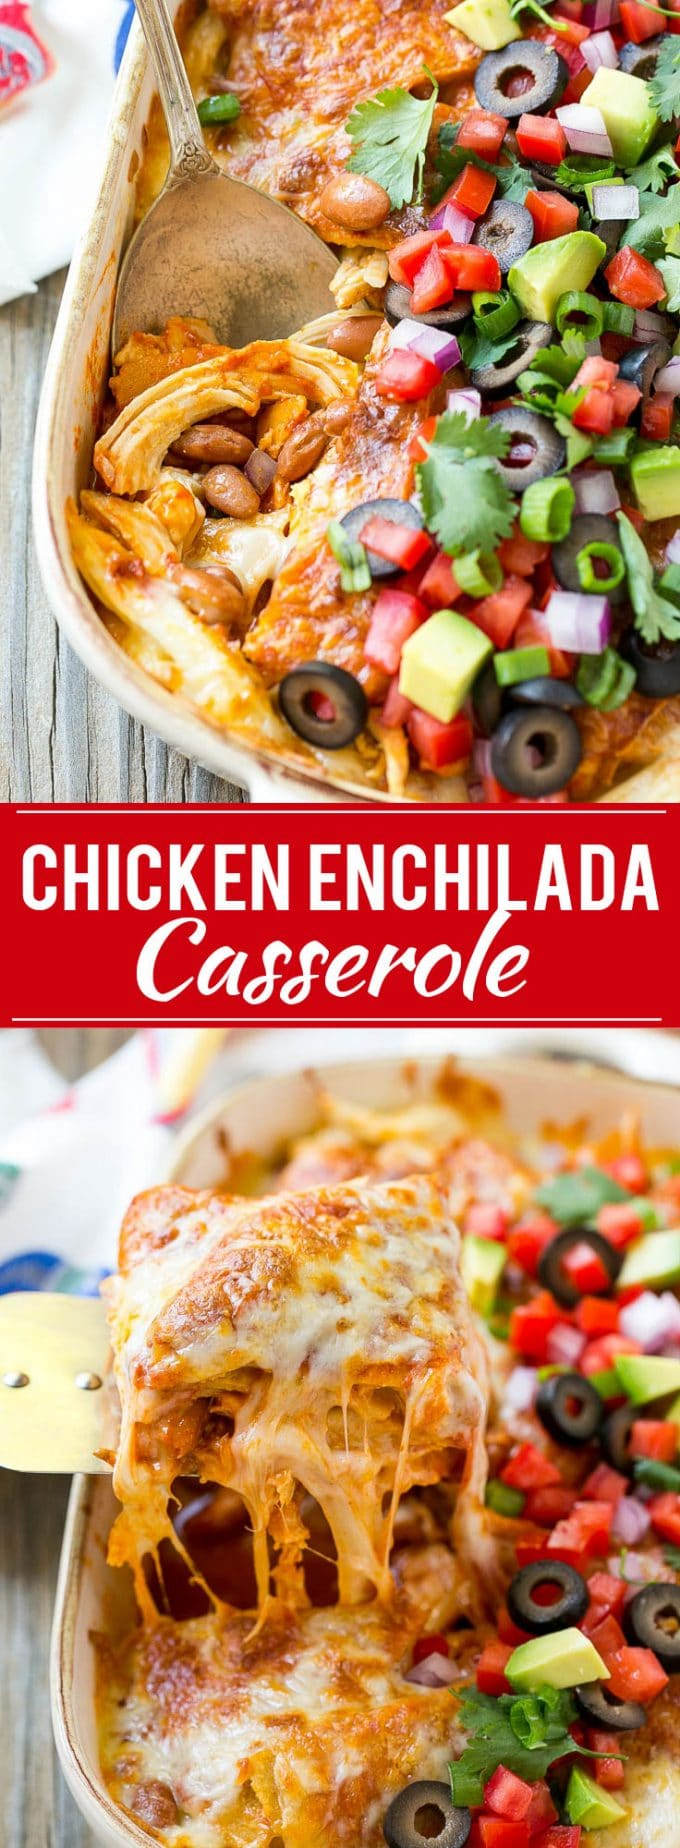 Chicken enchilada casserole dinner at the zoo chicken enchilada casserole recipe chicken enchiladas easy casserole recipe enchilada casserole forumfinder Choice Image